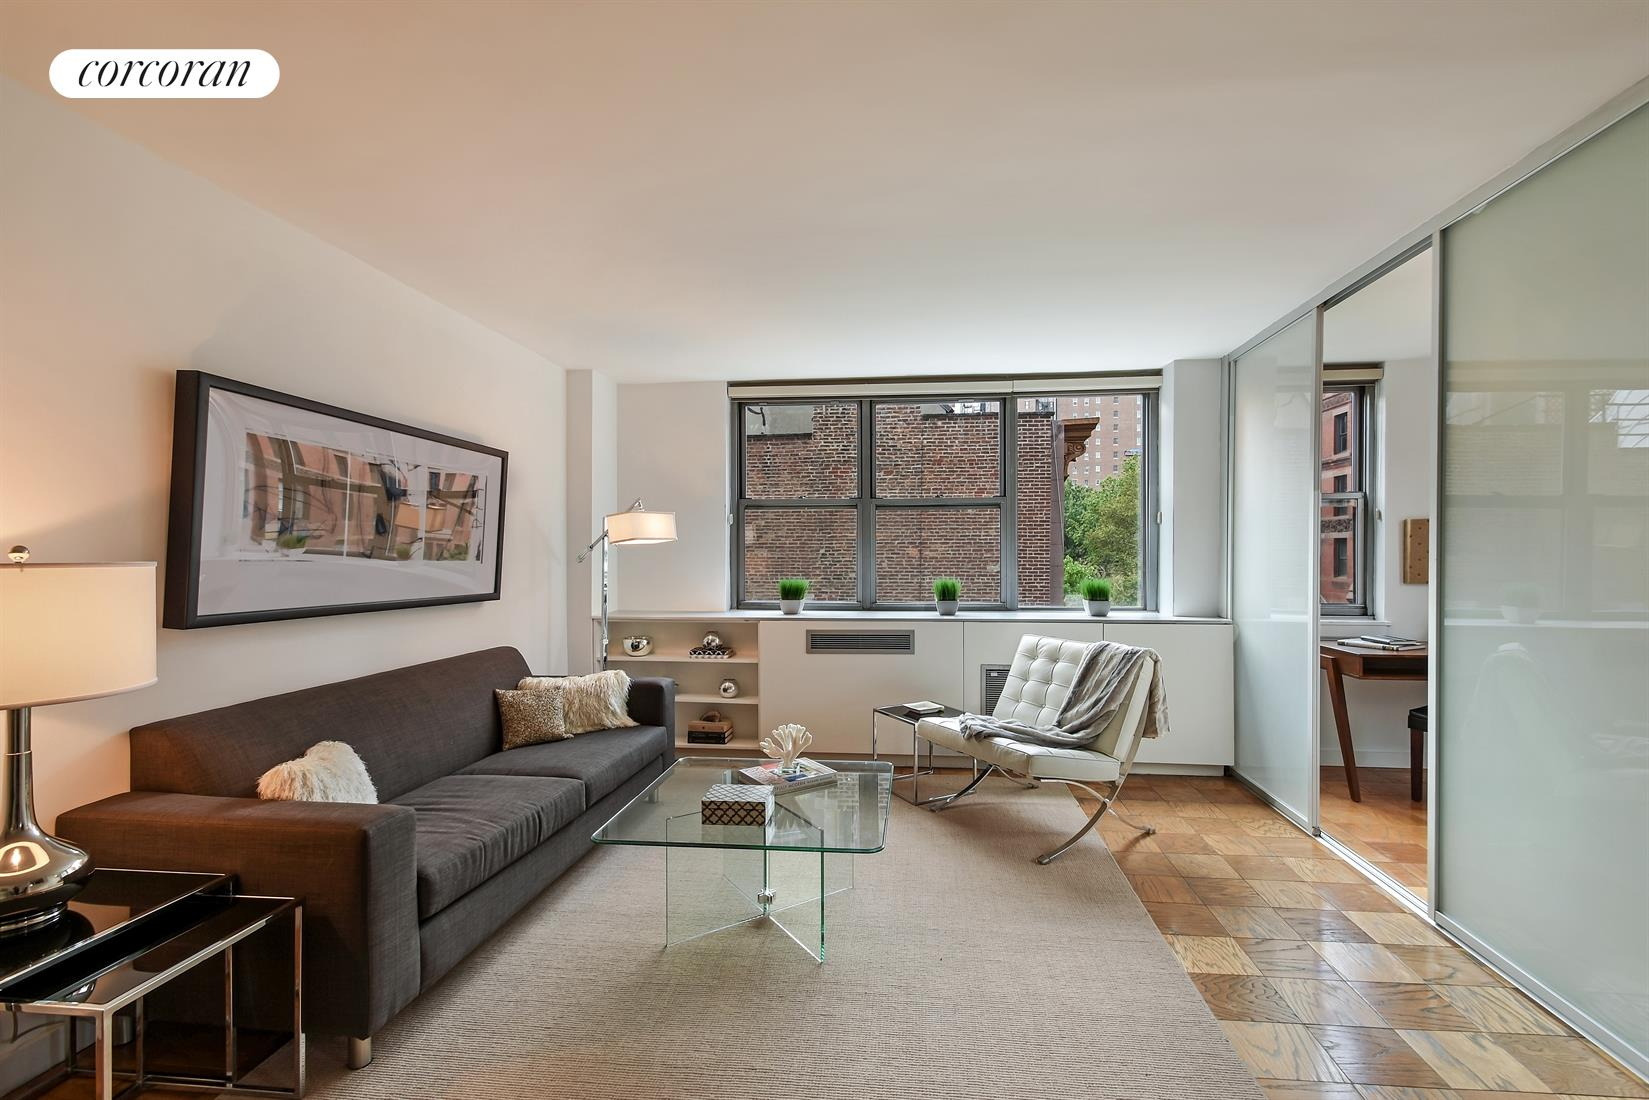 Corcoran 32 gramercy park south apt 6l gramercy real for Gramercy park apartments for sale